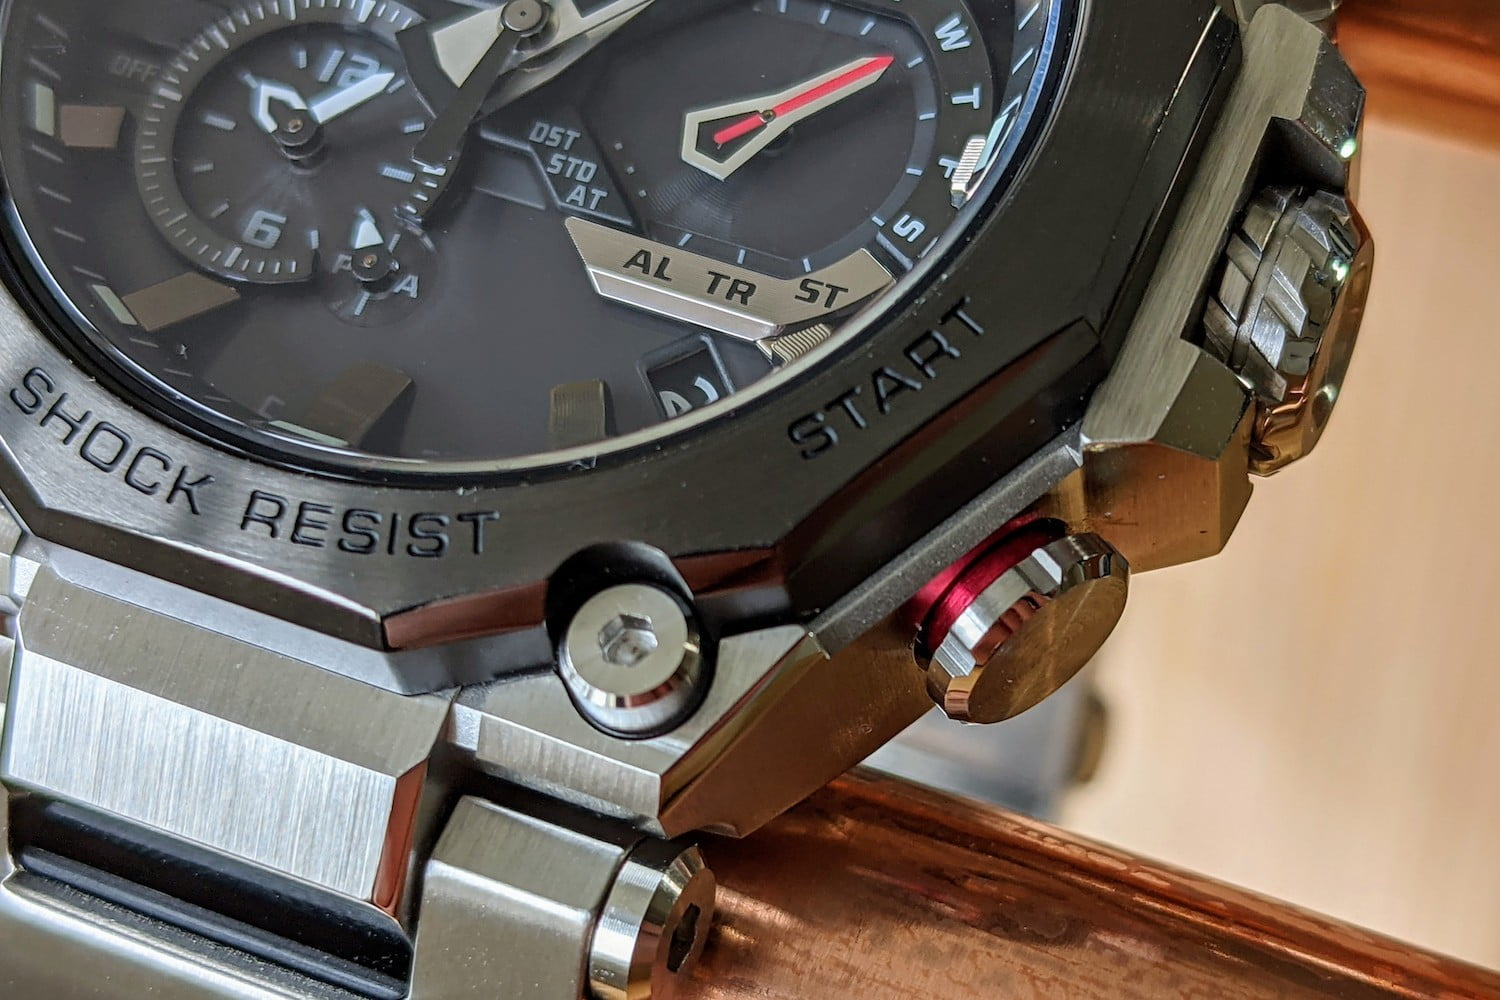 casio g shock mtg b2000 hands on features price photos release date gshock mtgb2000 red button